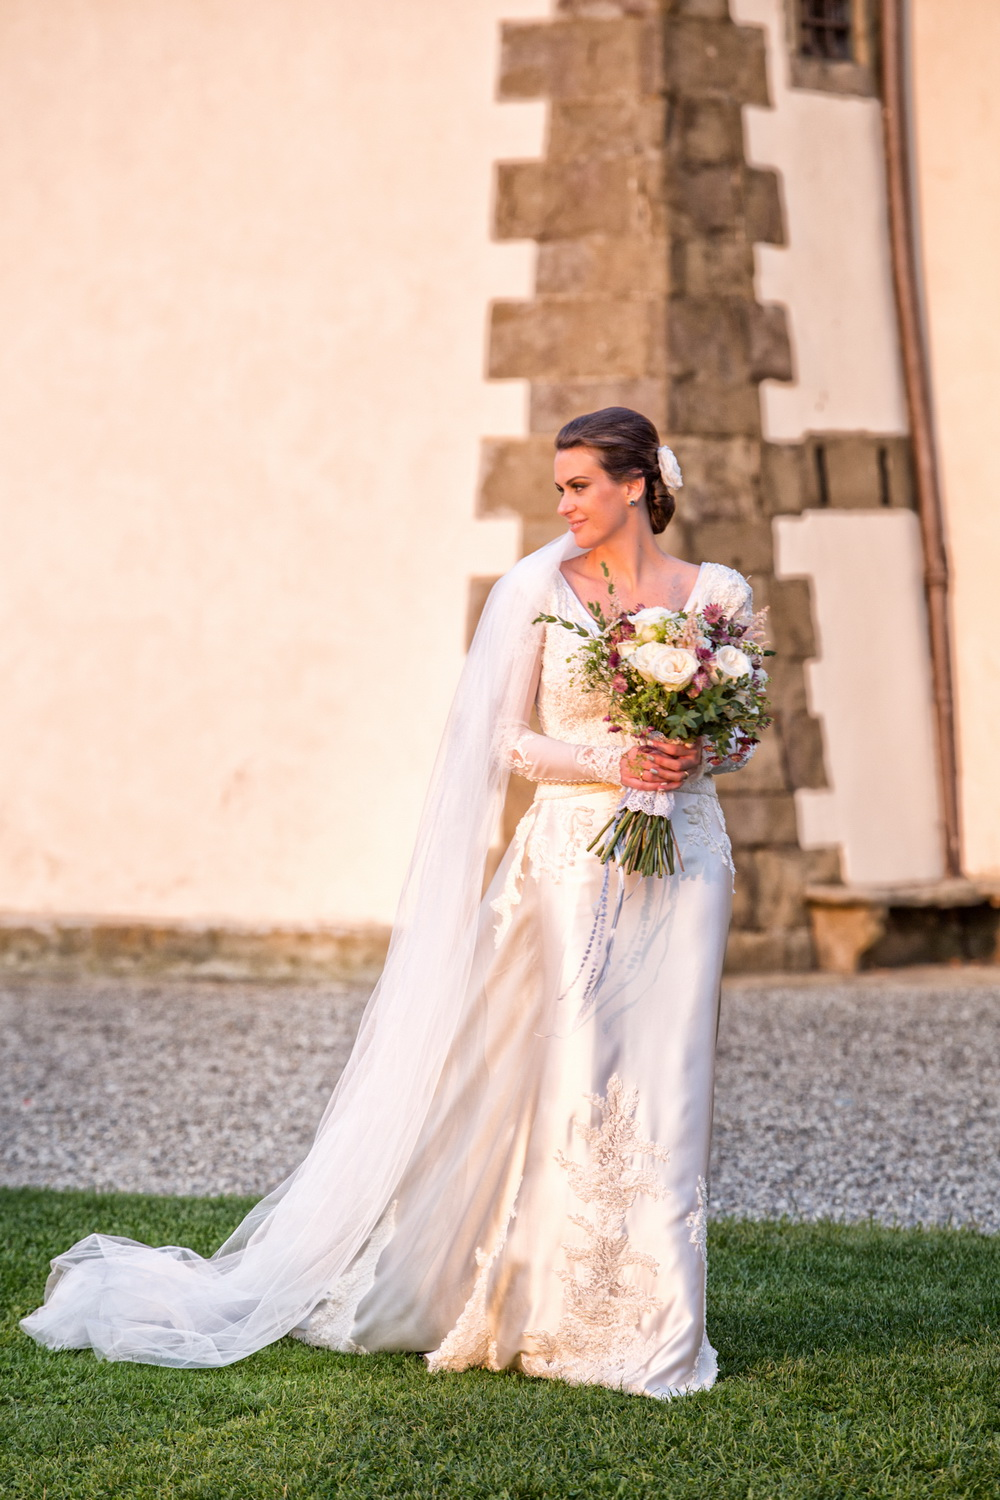 destination wedding na toscana | caroline e fernando Destination Wedding na Toscana | Caroline e Fernando marco zammarchi destination wedding 48